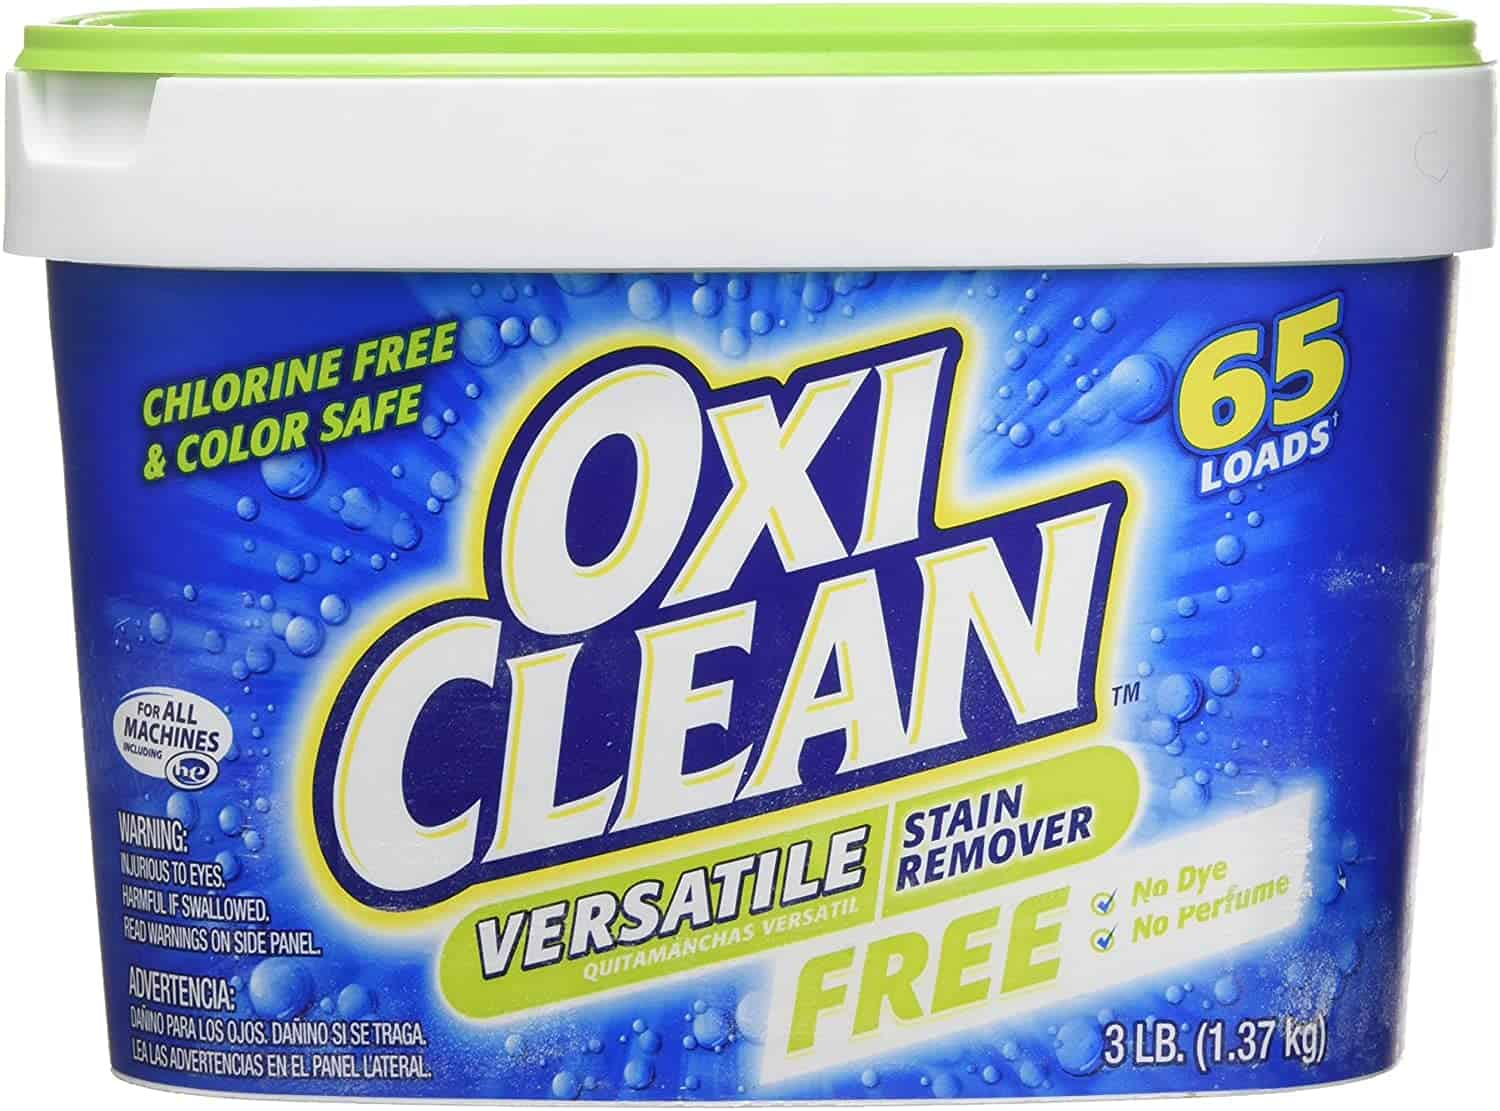 OxiClean Stain remover safety vest